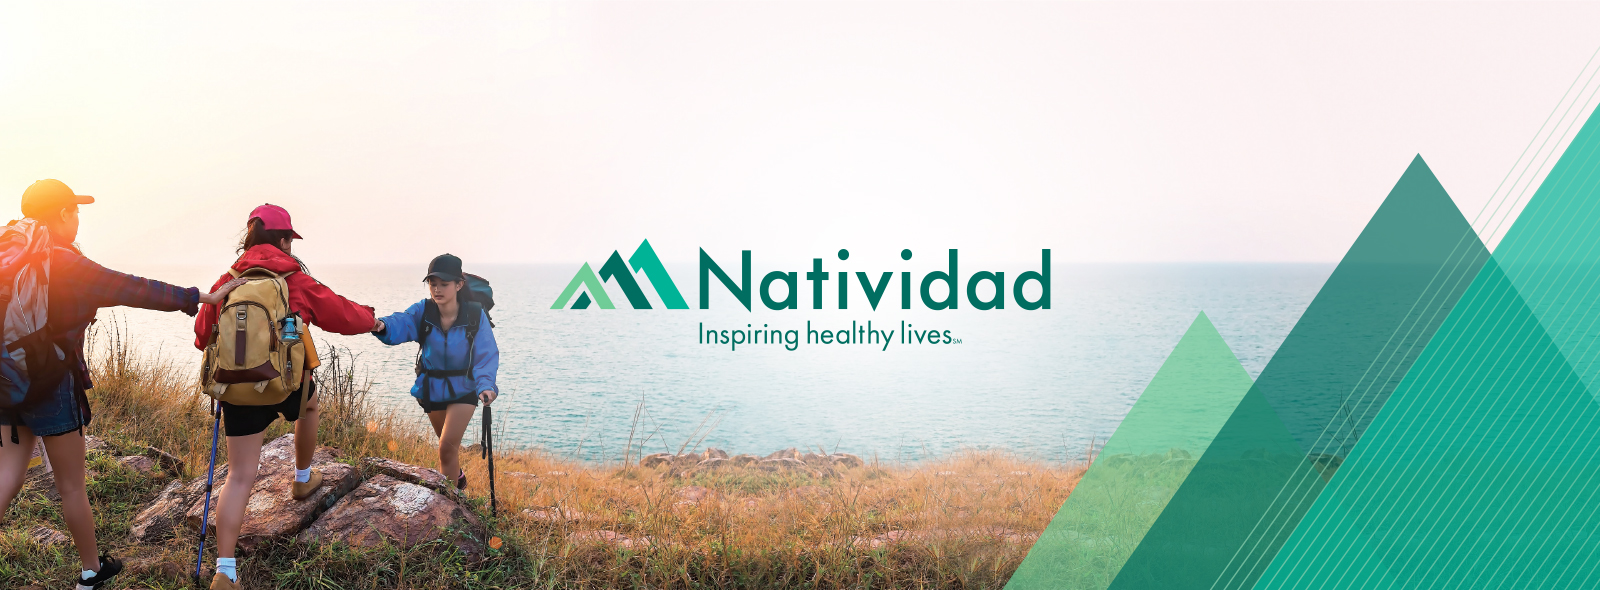 Natividad banner with people hiking